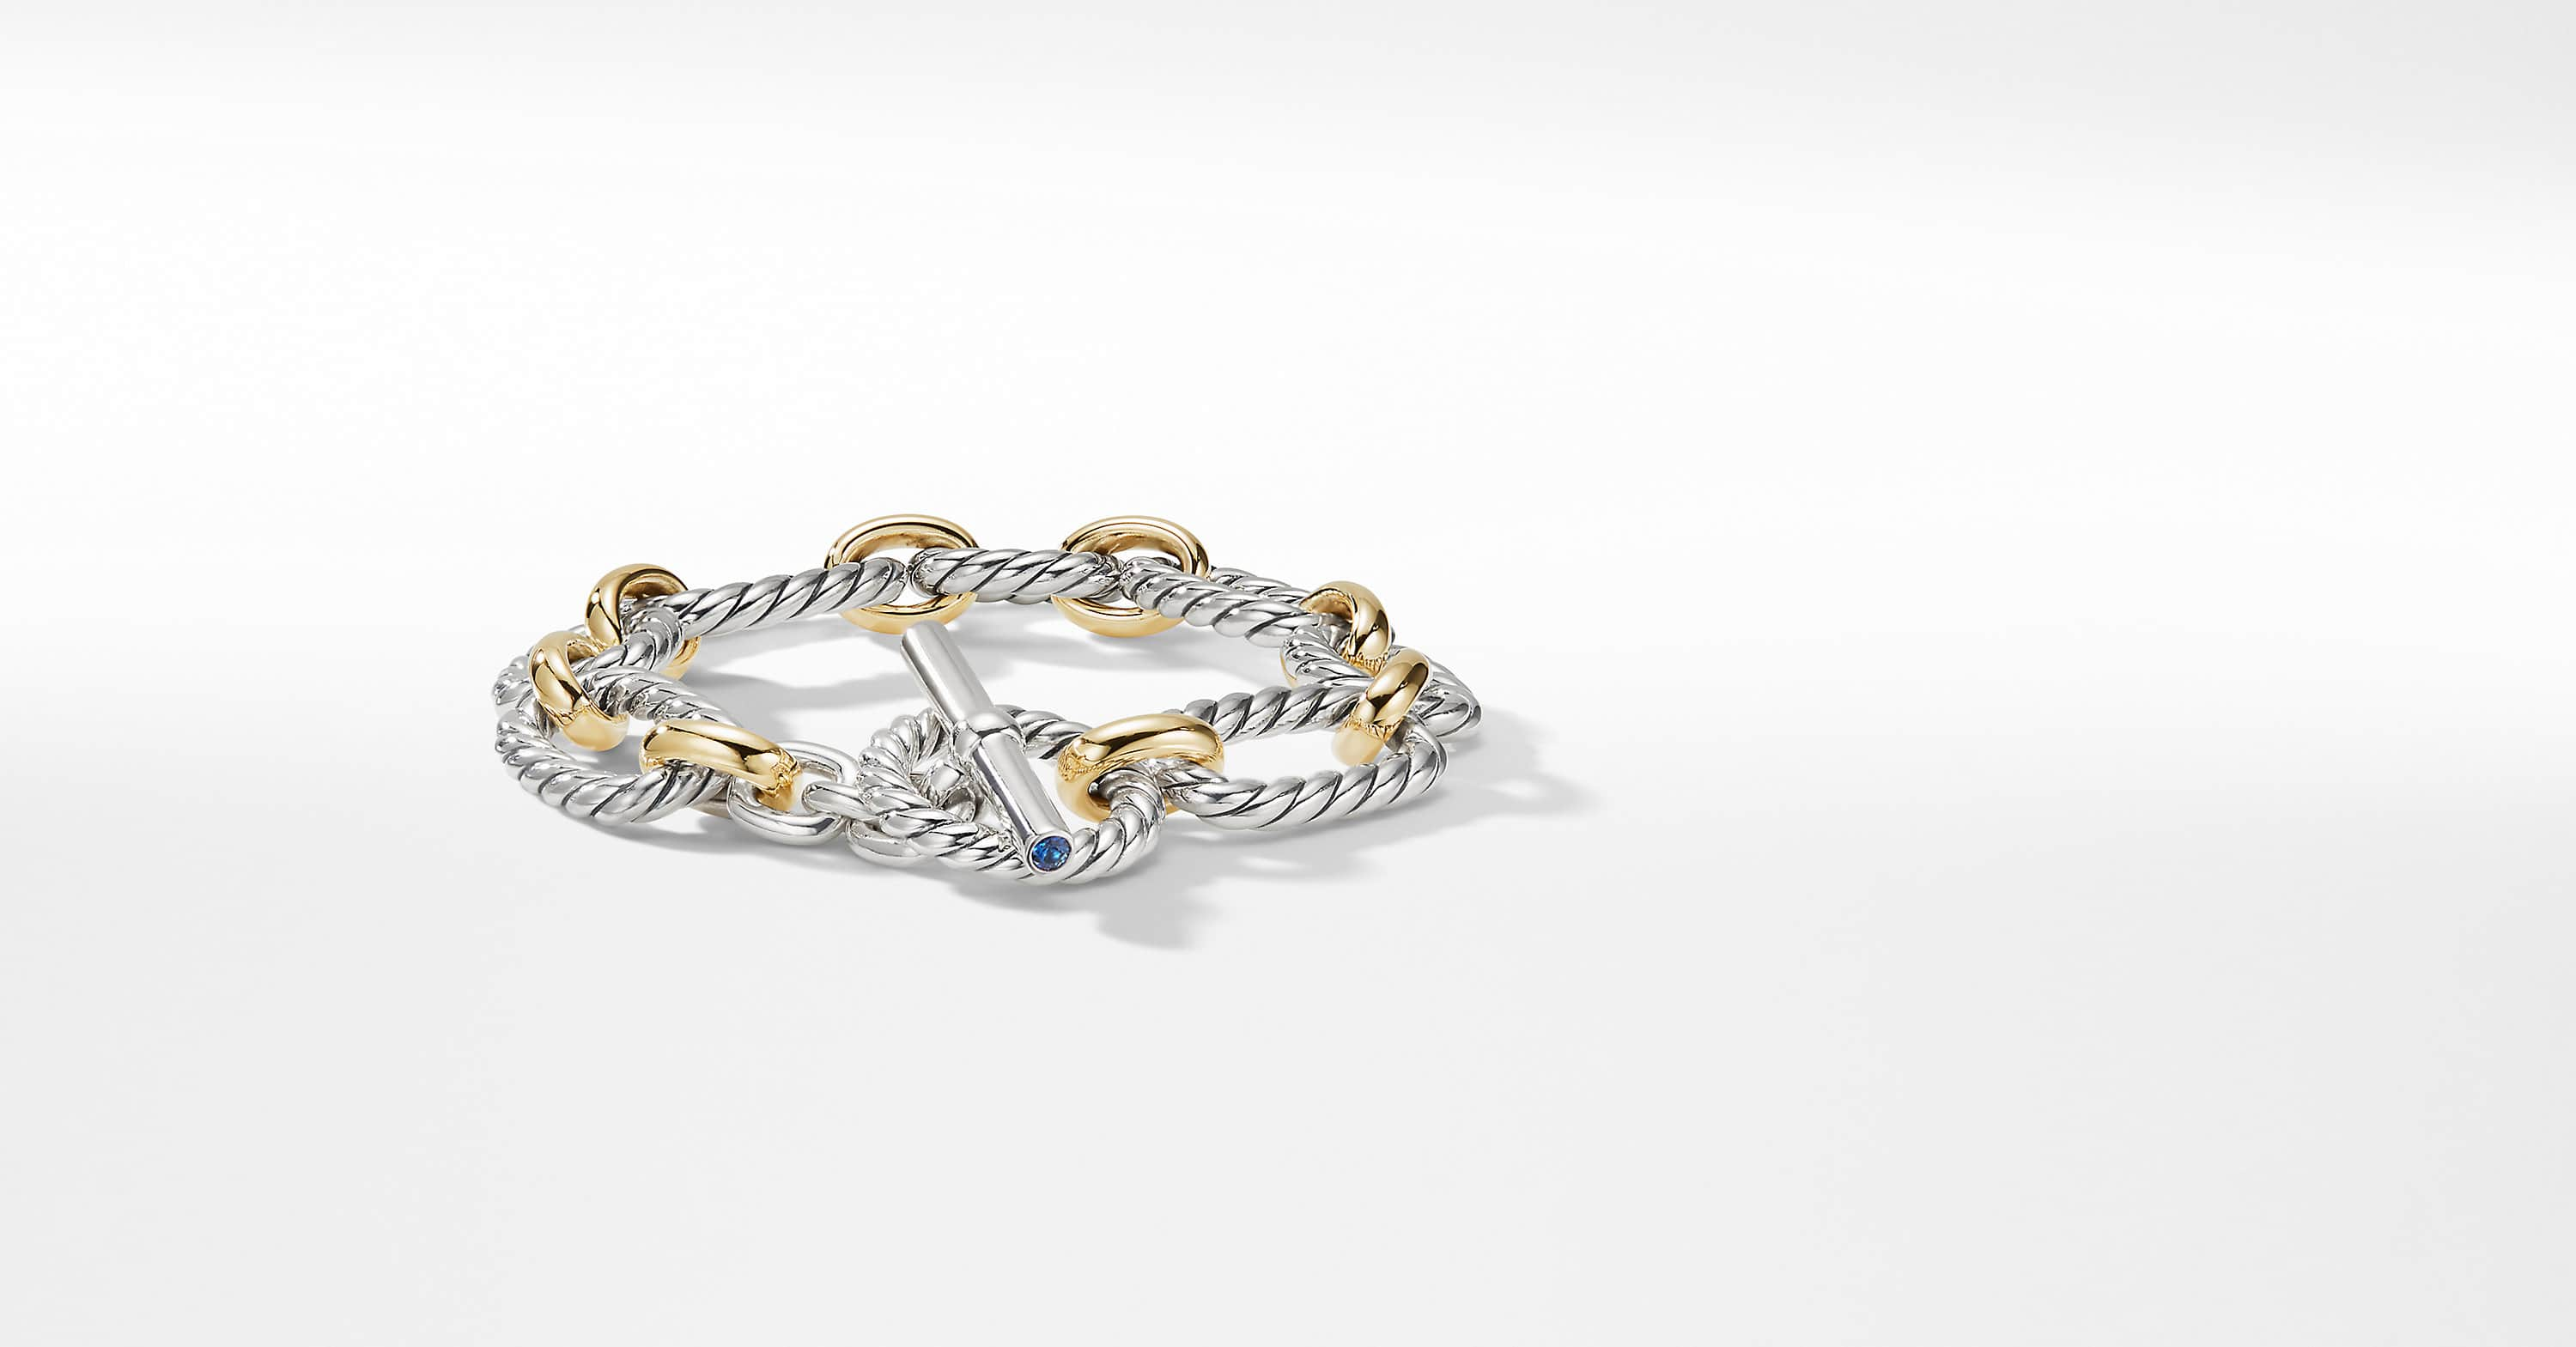 Cushion Link Bracelet with 18K Gold, 12.5mm